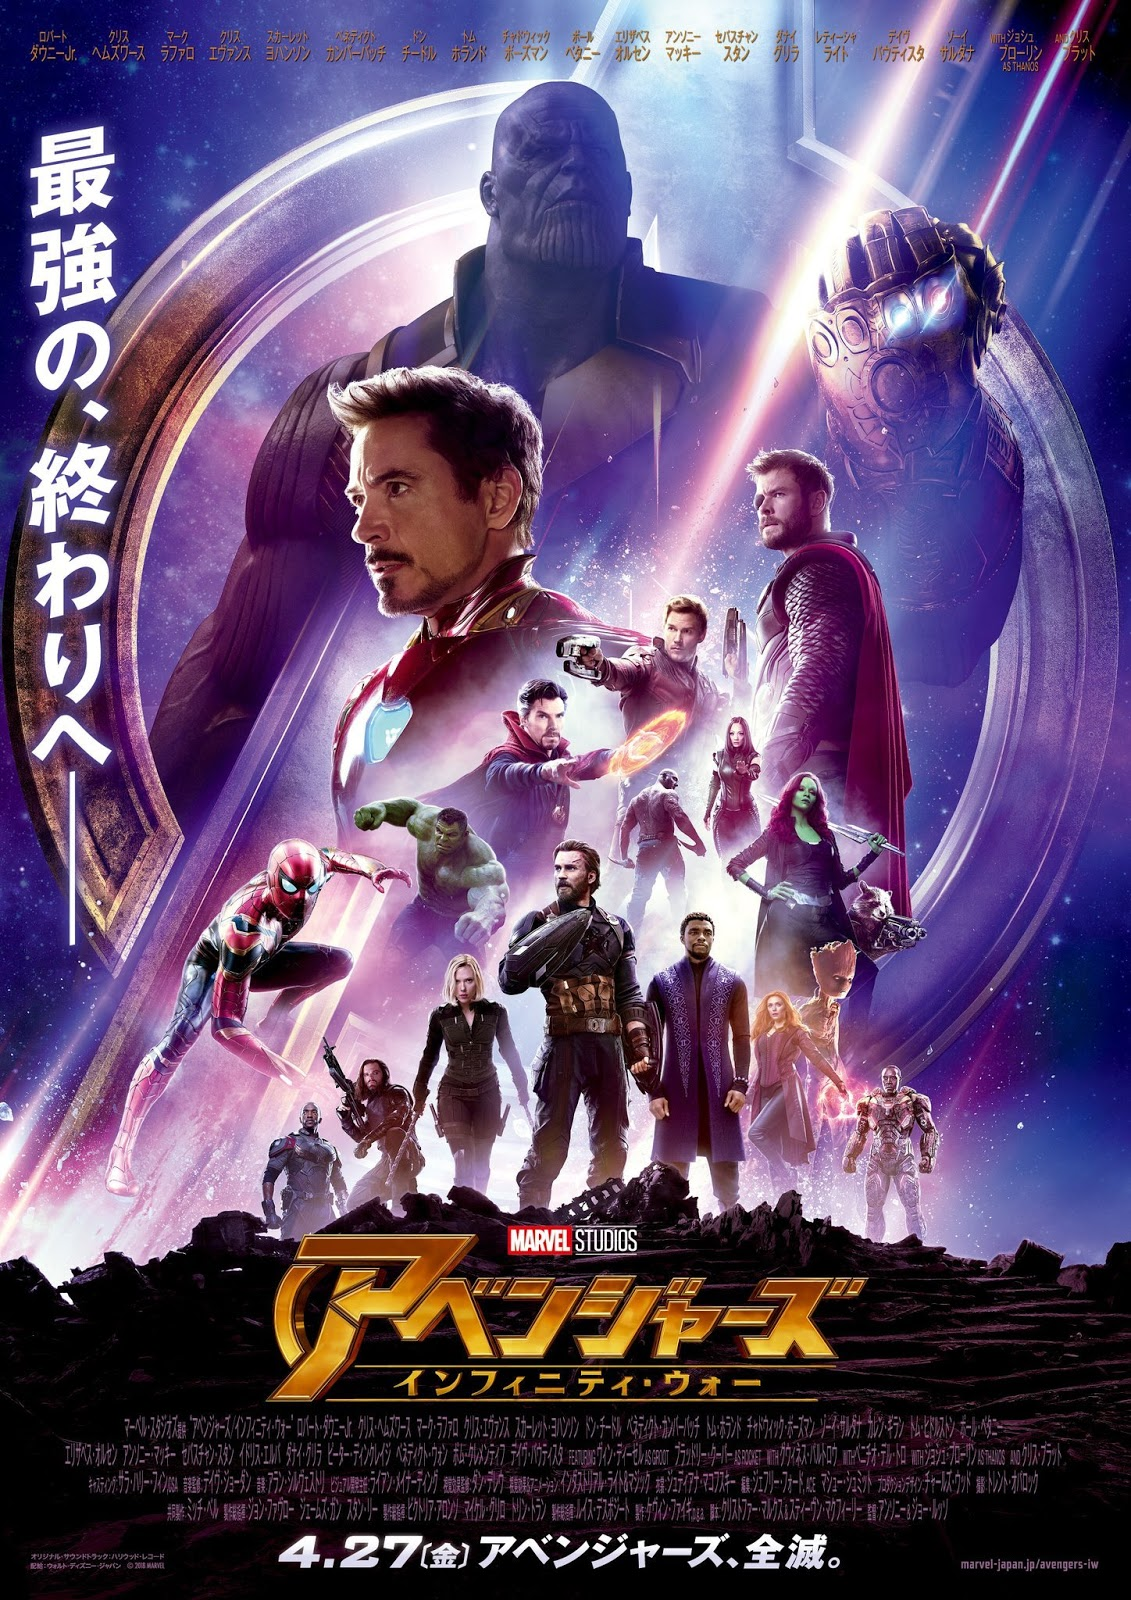 Japanese language Avengers Infinity War official poster